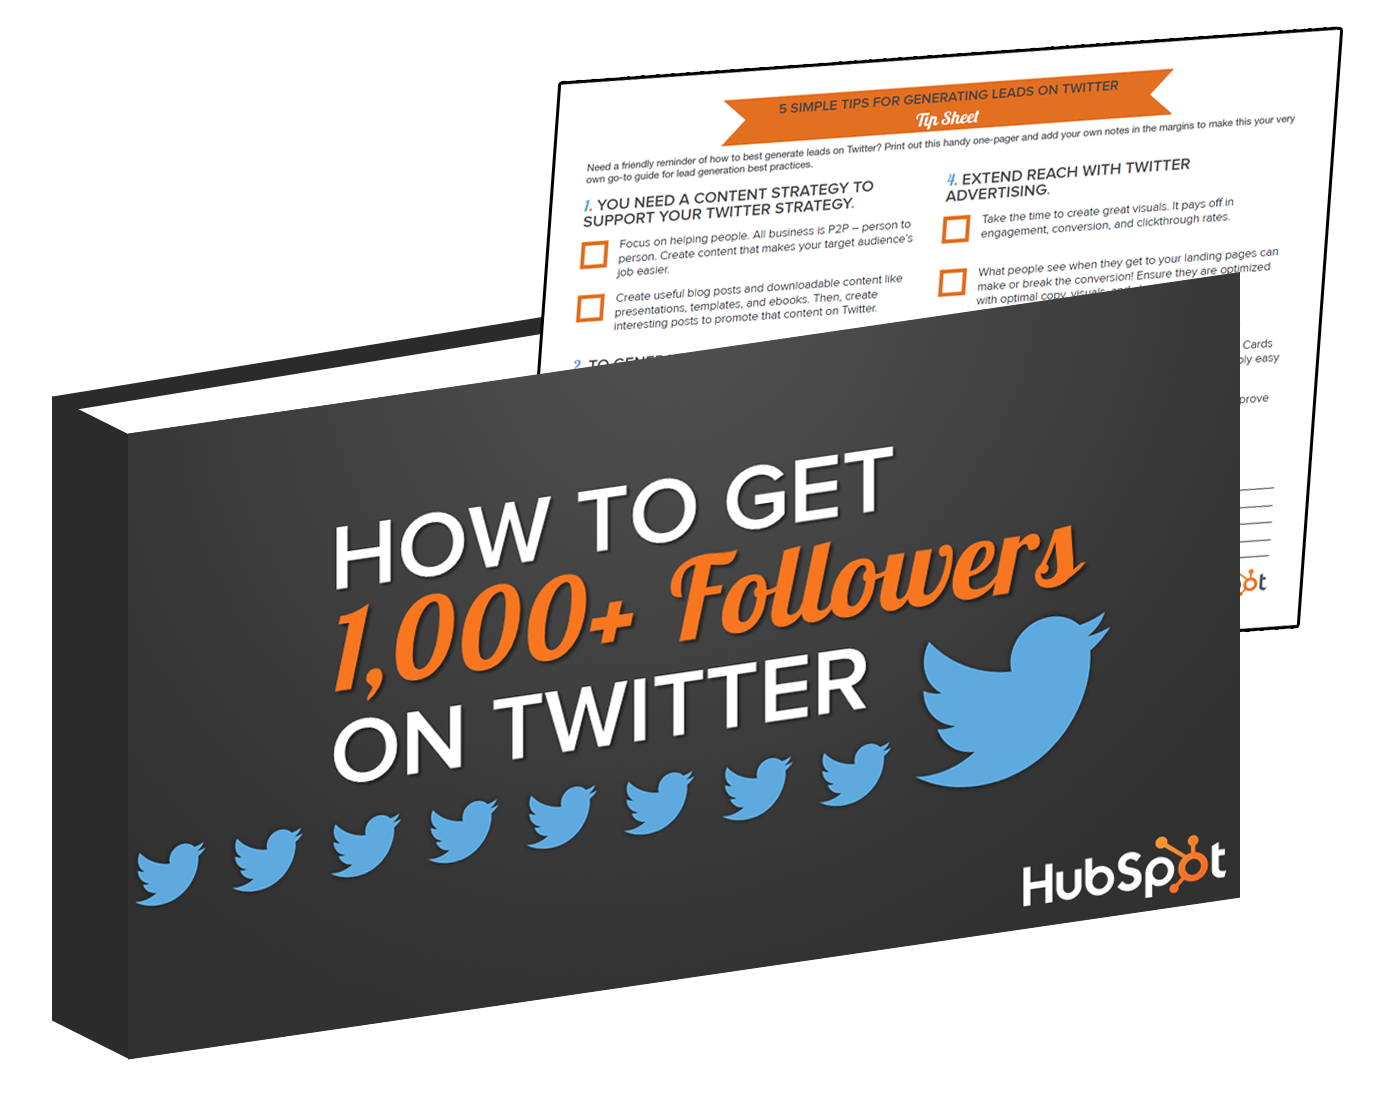 how-to-get-1000+-followers-on-twitter-promo-image